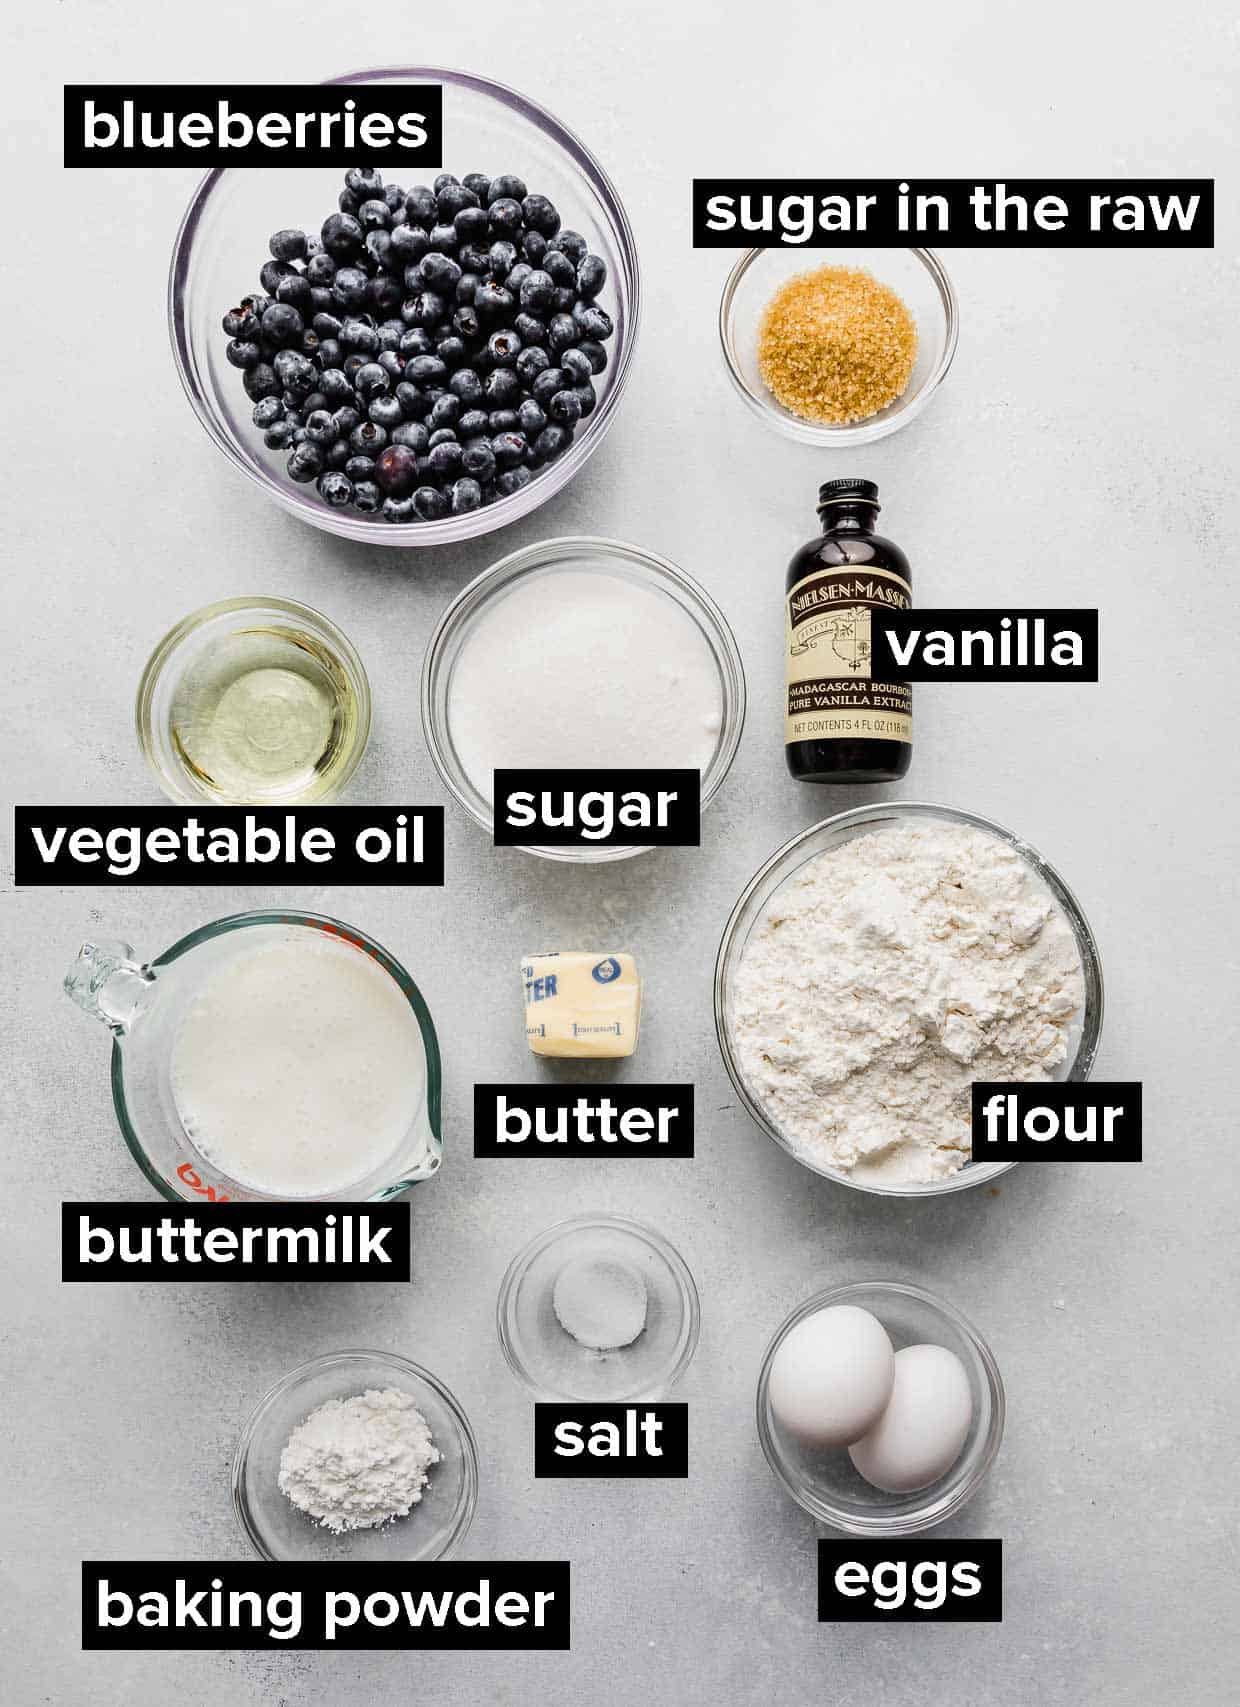 Ingredients used to make buttermilk blueberry muffins.